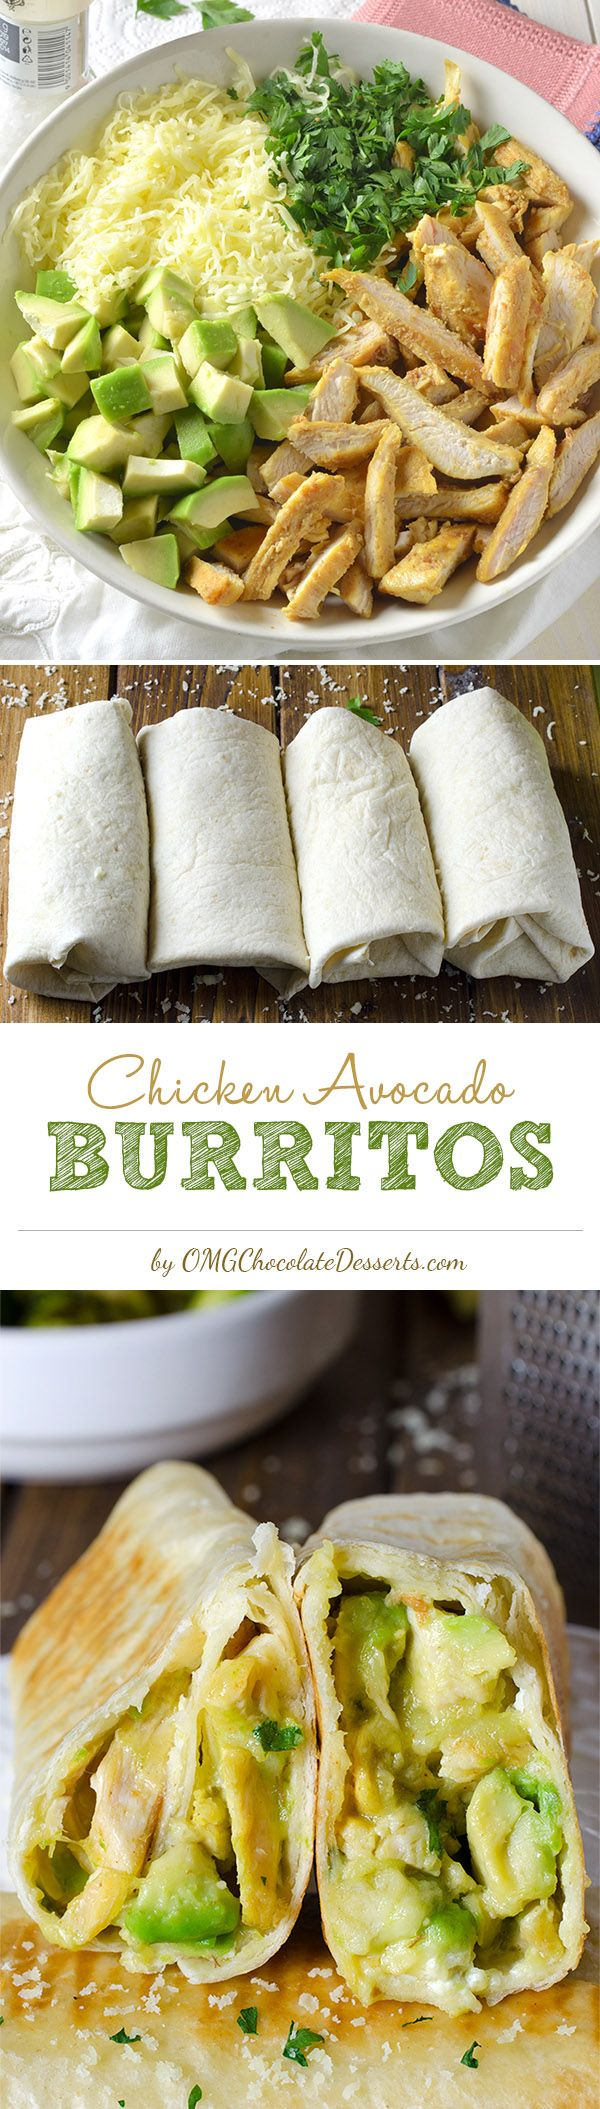 If you are in a big hurry to prepare a beautiful lunch or dinner, maybe it's time for you to try the healthy and easy Chicken Avocado Burritos.